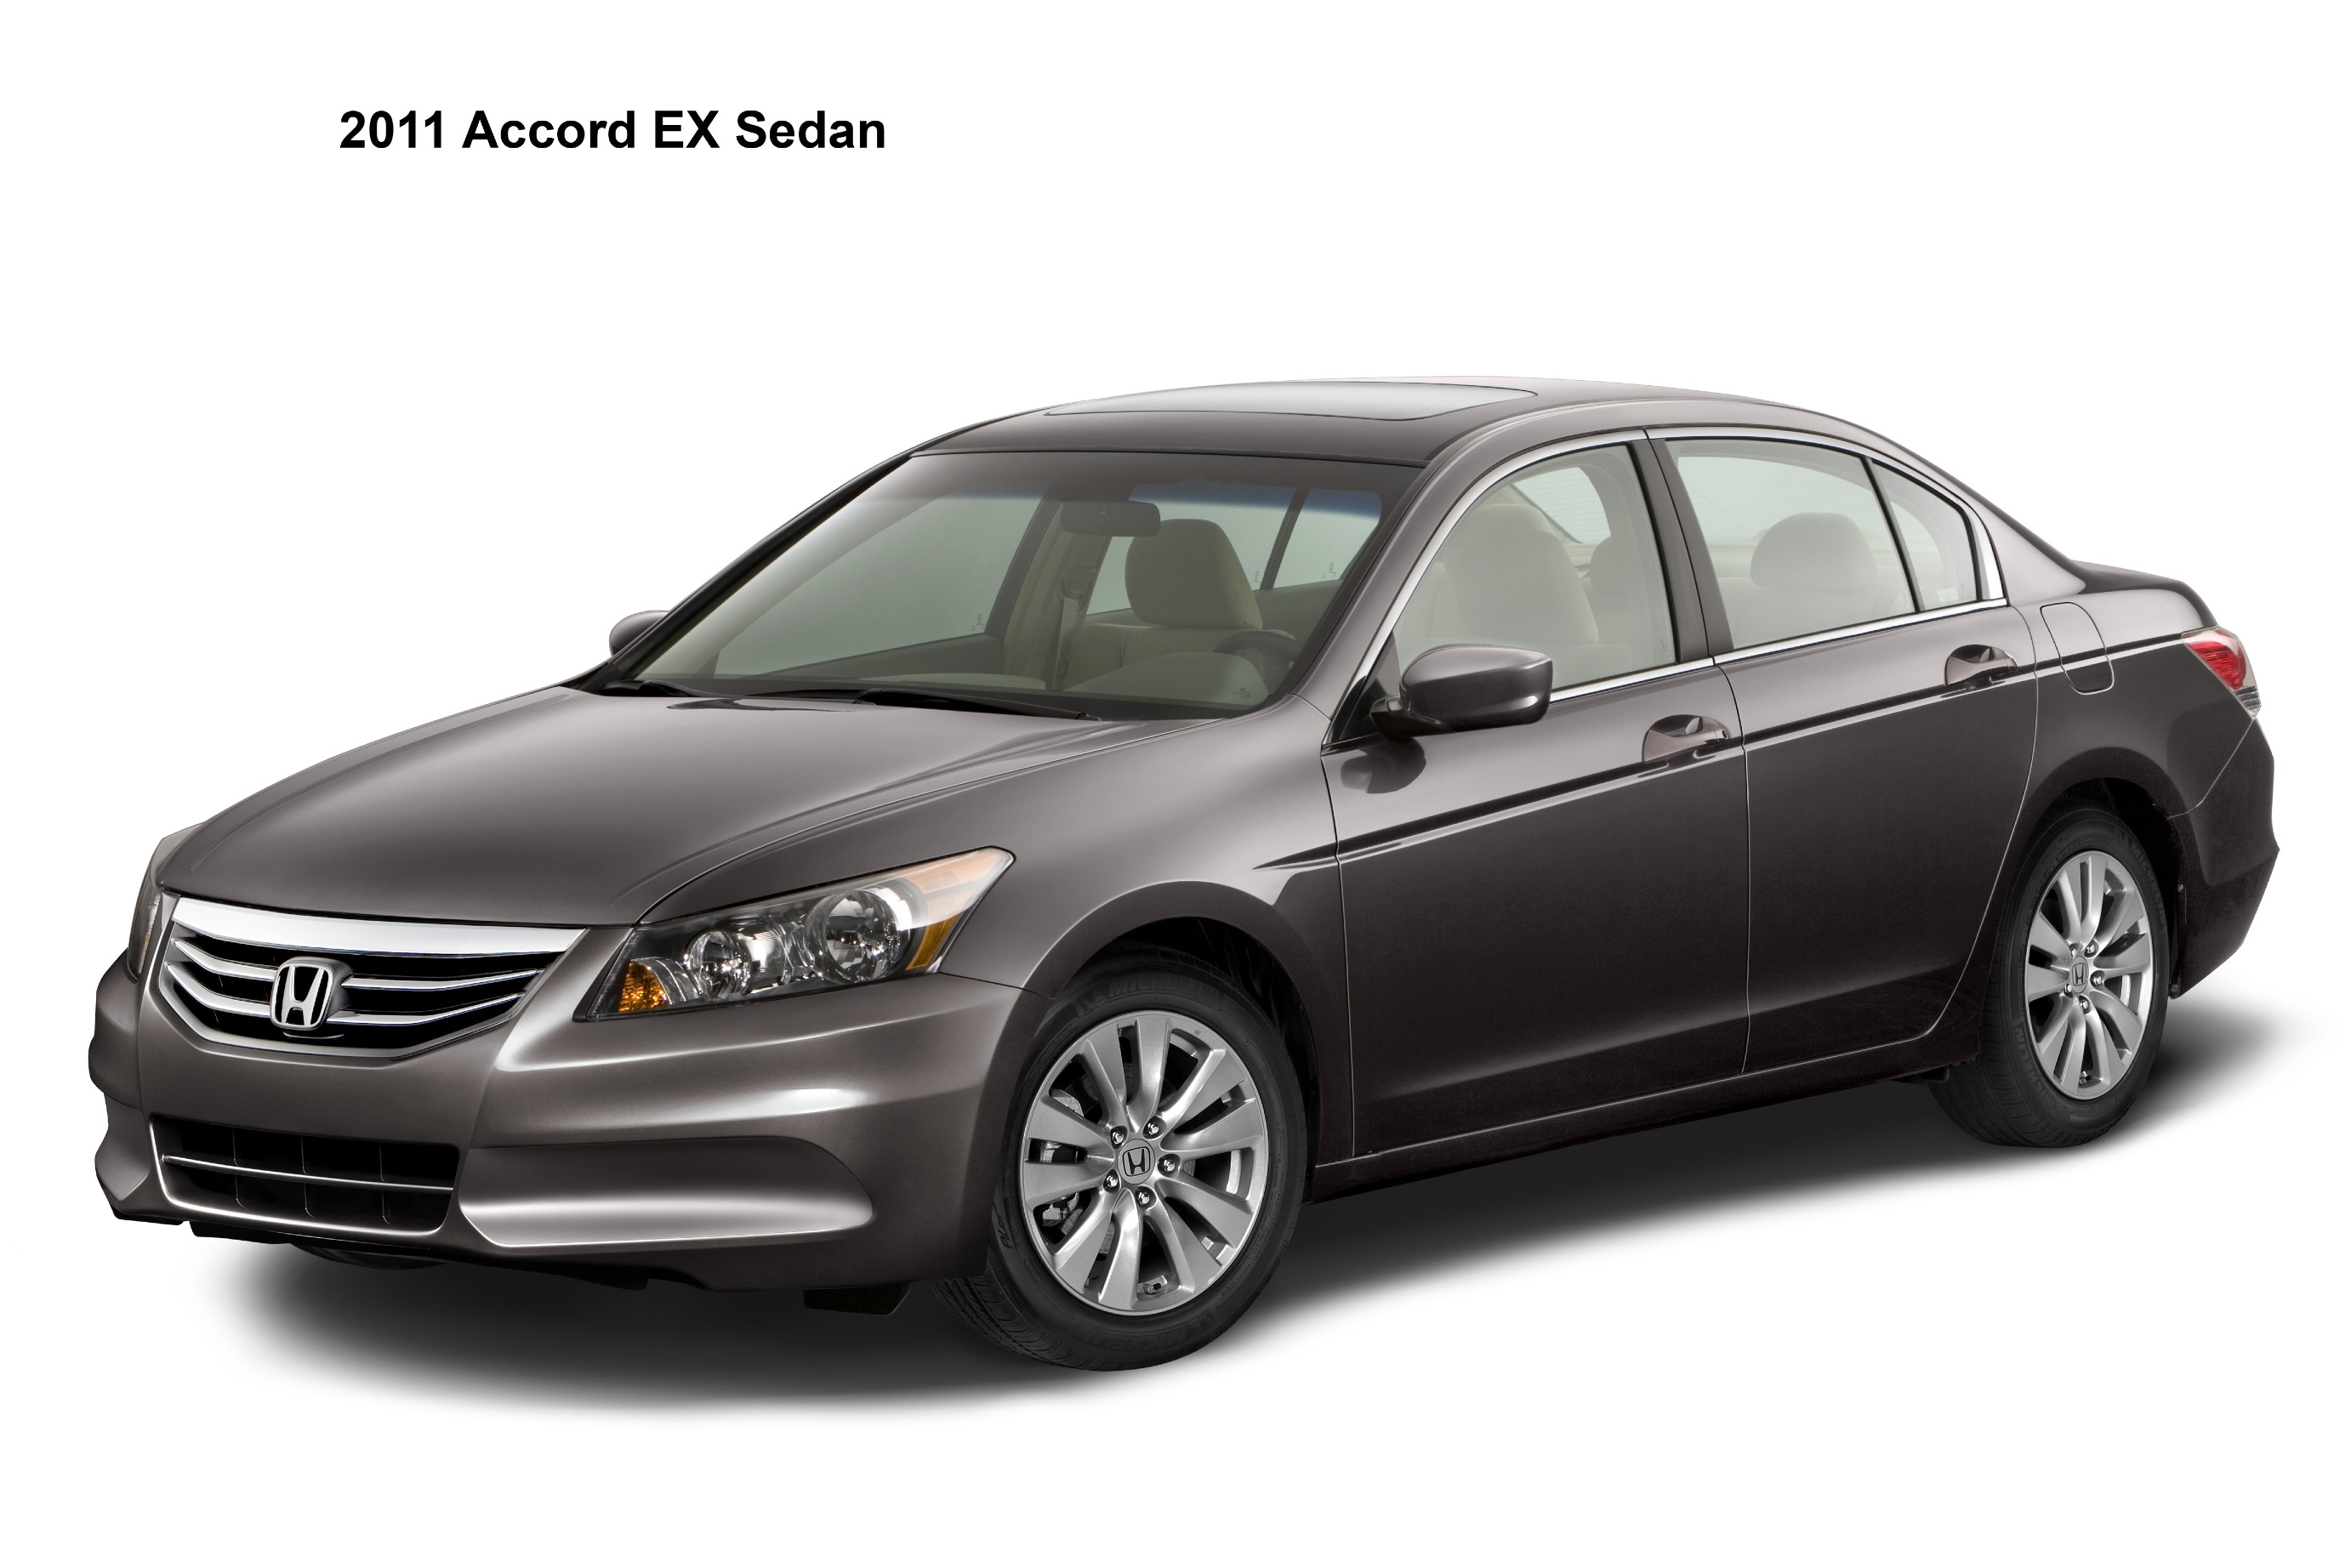 Accord Honda Cars of Katy Offers Solutions Houston Gas Prices Rising Desktop Backgrounds